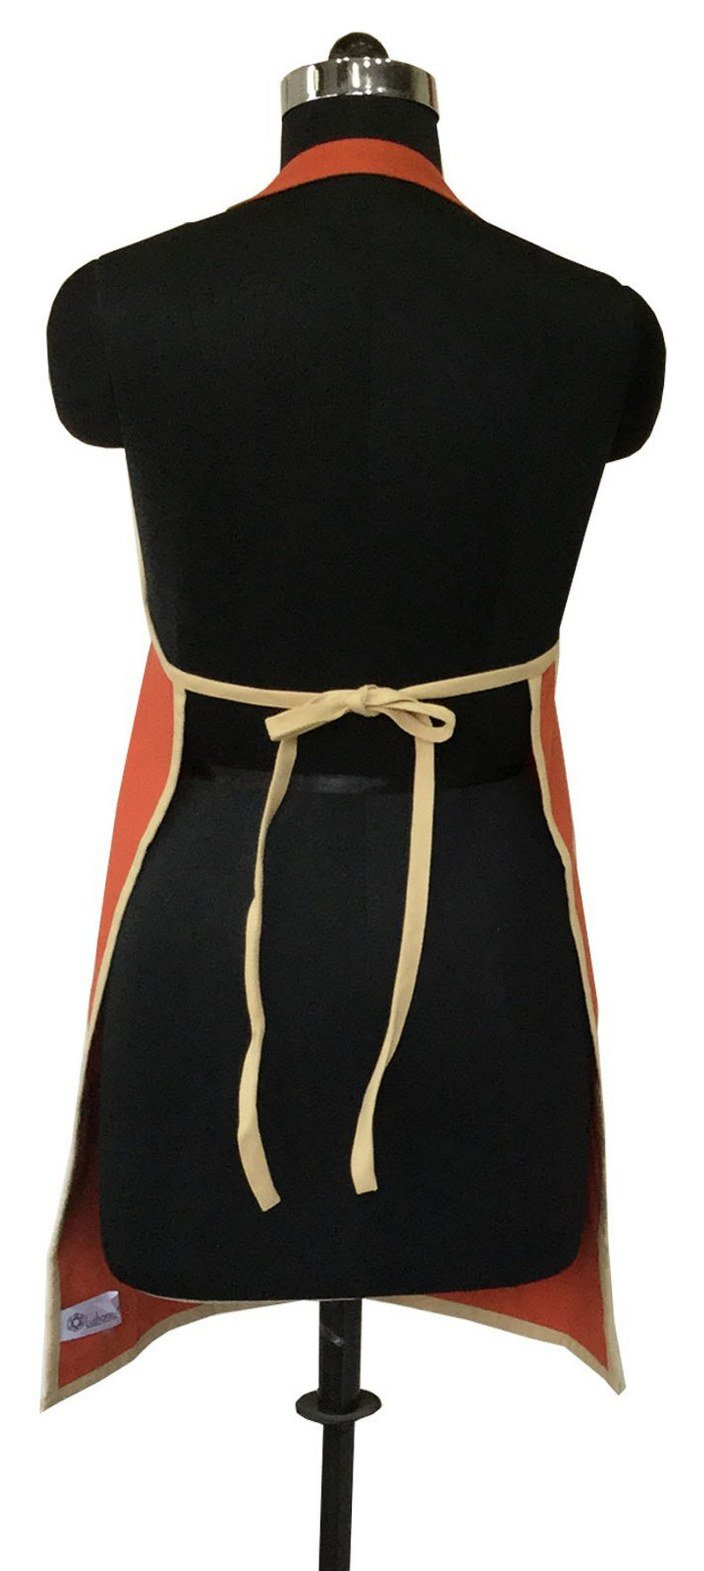 Lushomes Red Wood and Sand Bi-color Apron Set (8 pcs)